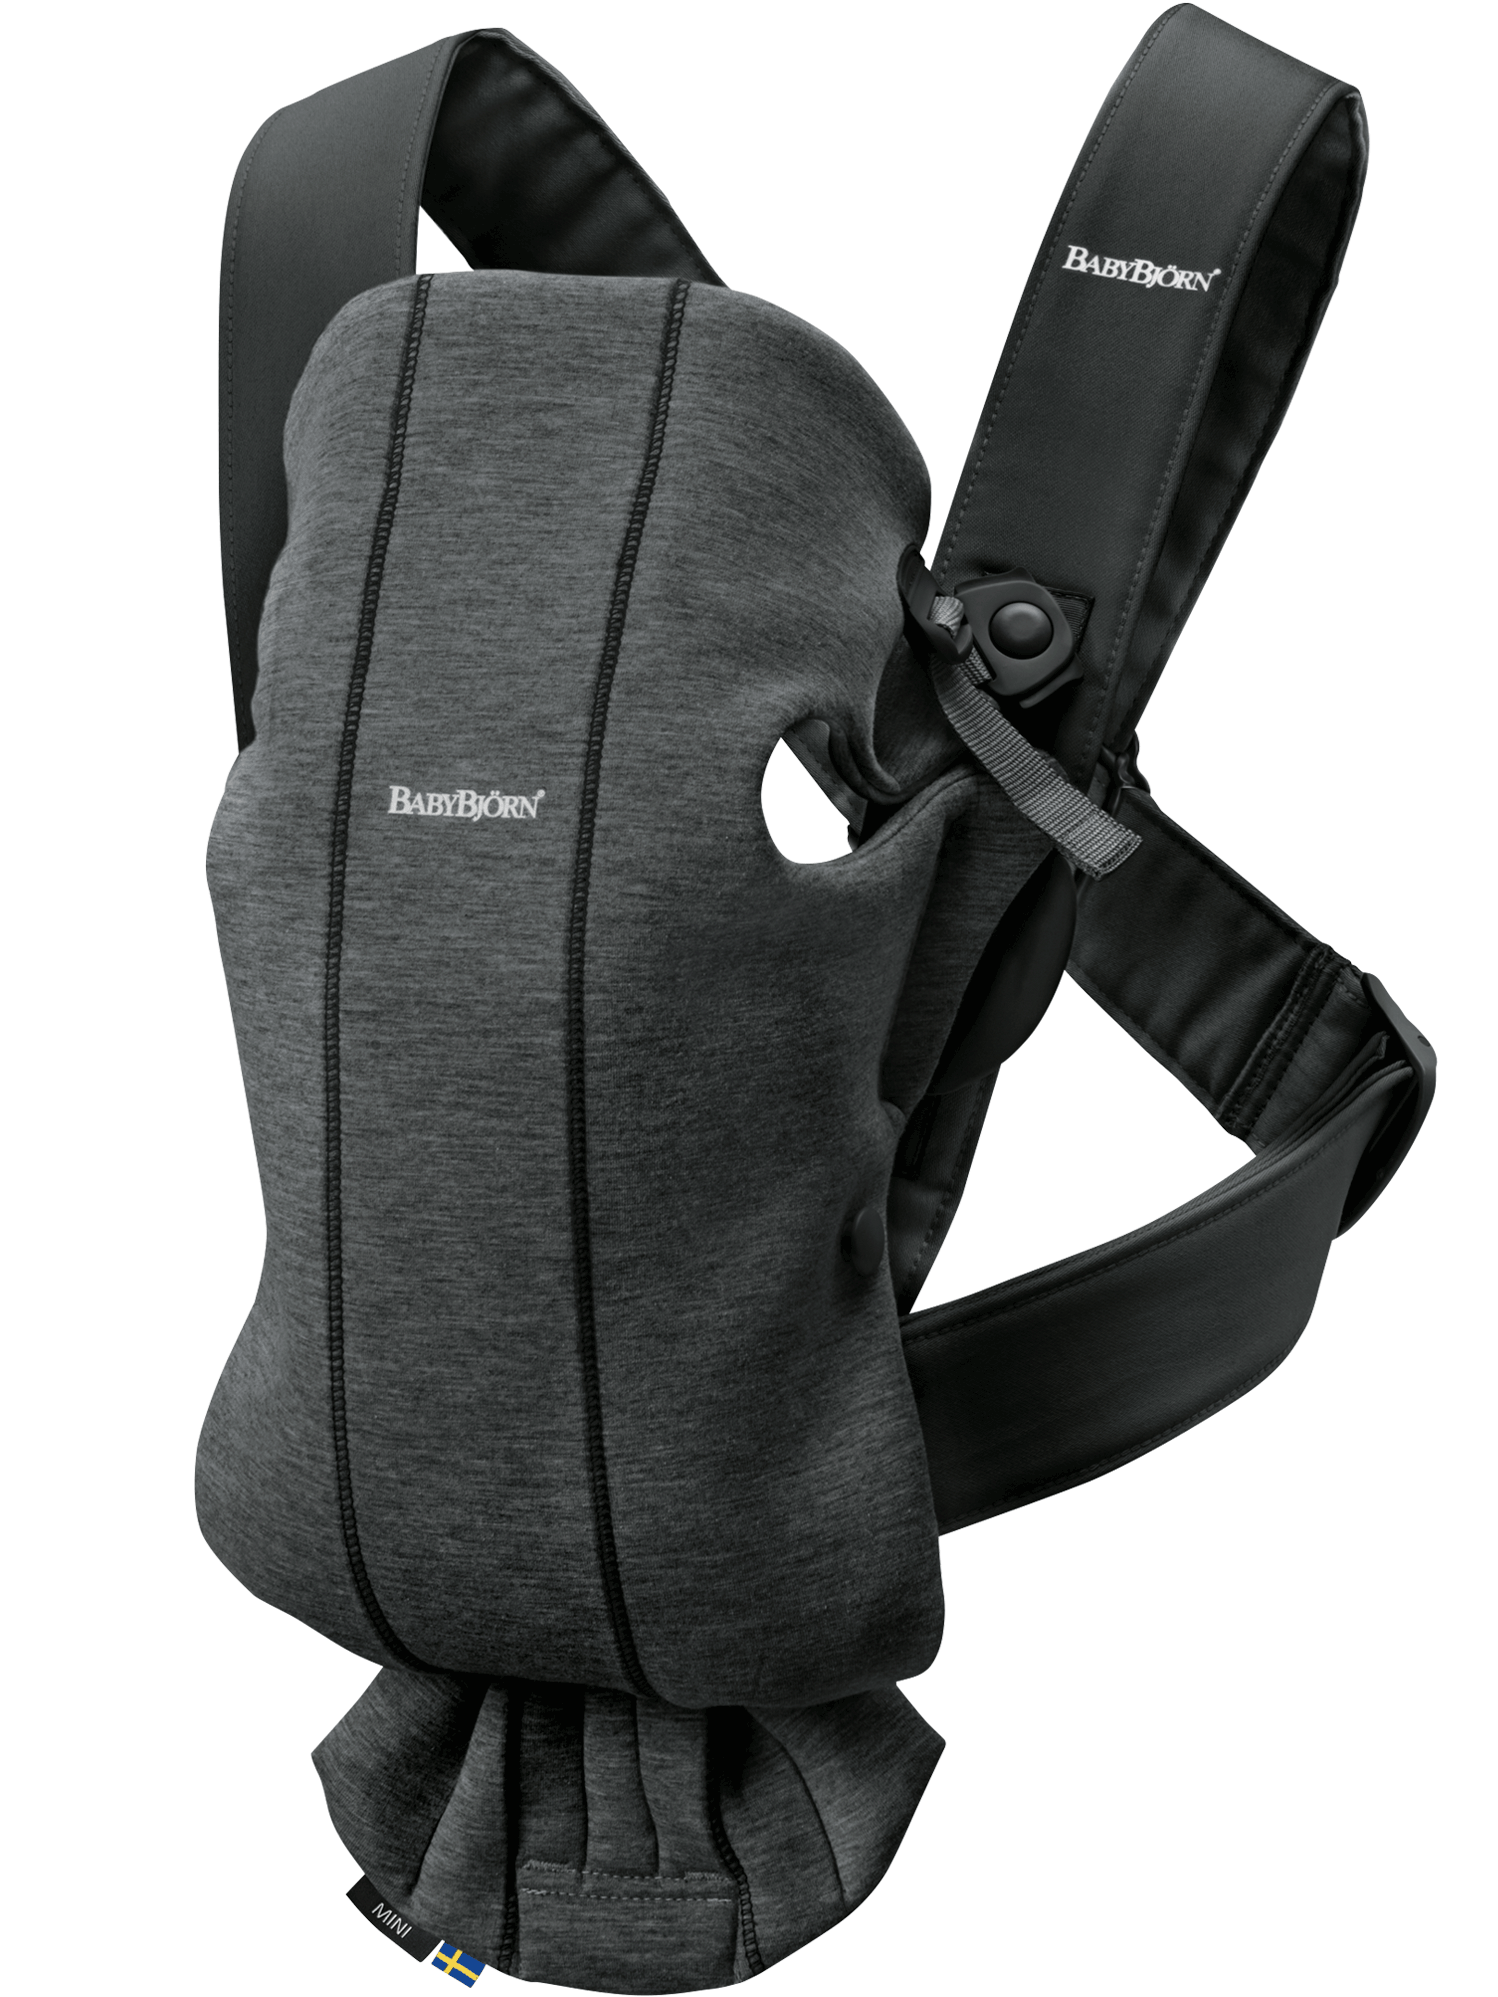 Ķengursoma BabyBjorn Baby Carrier Mini Charcoal grey 3D Jersey